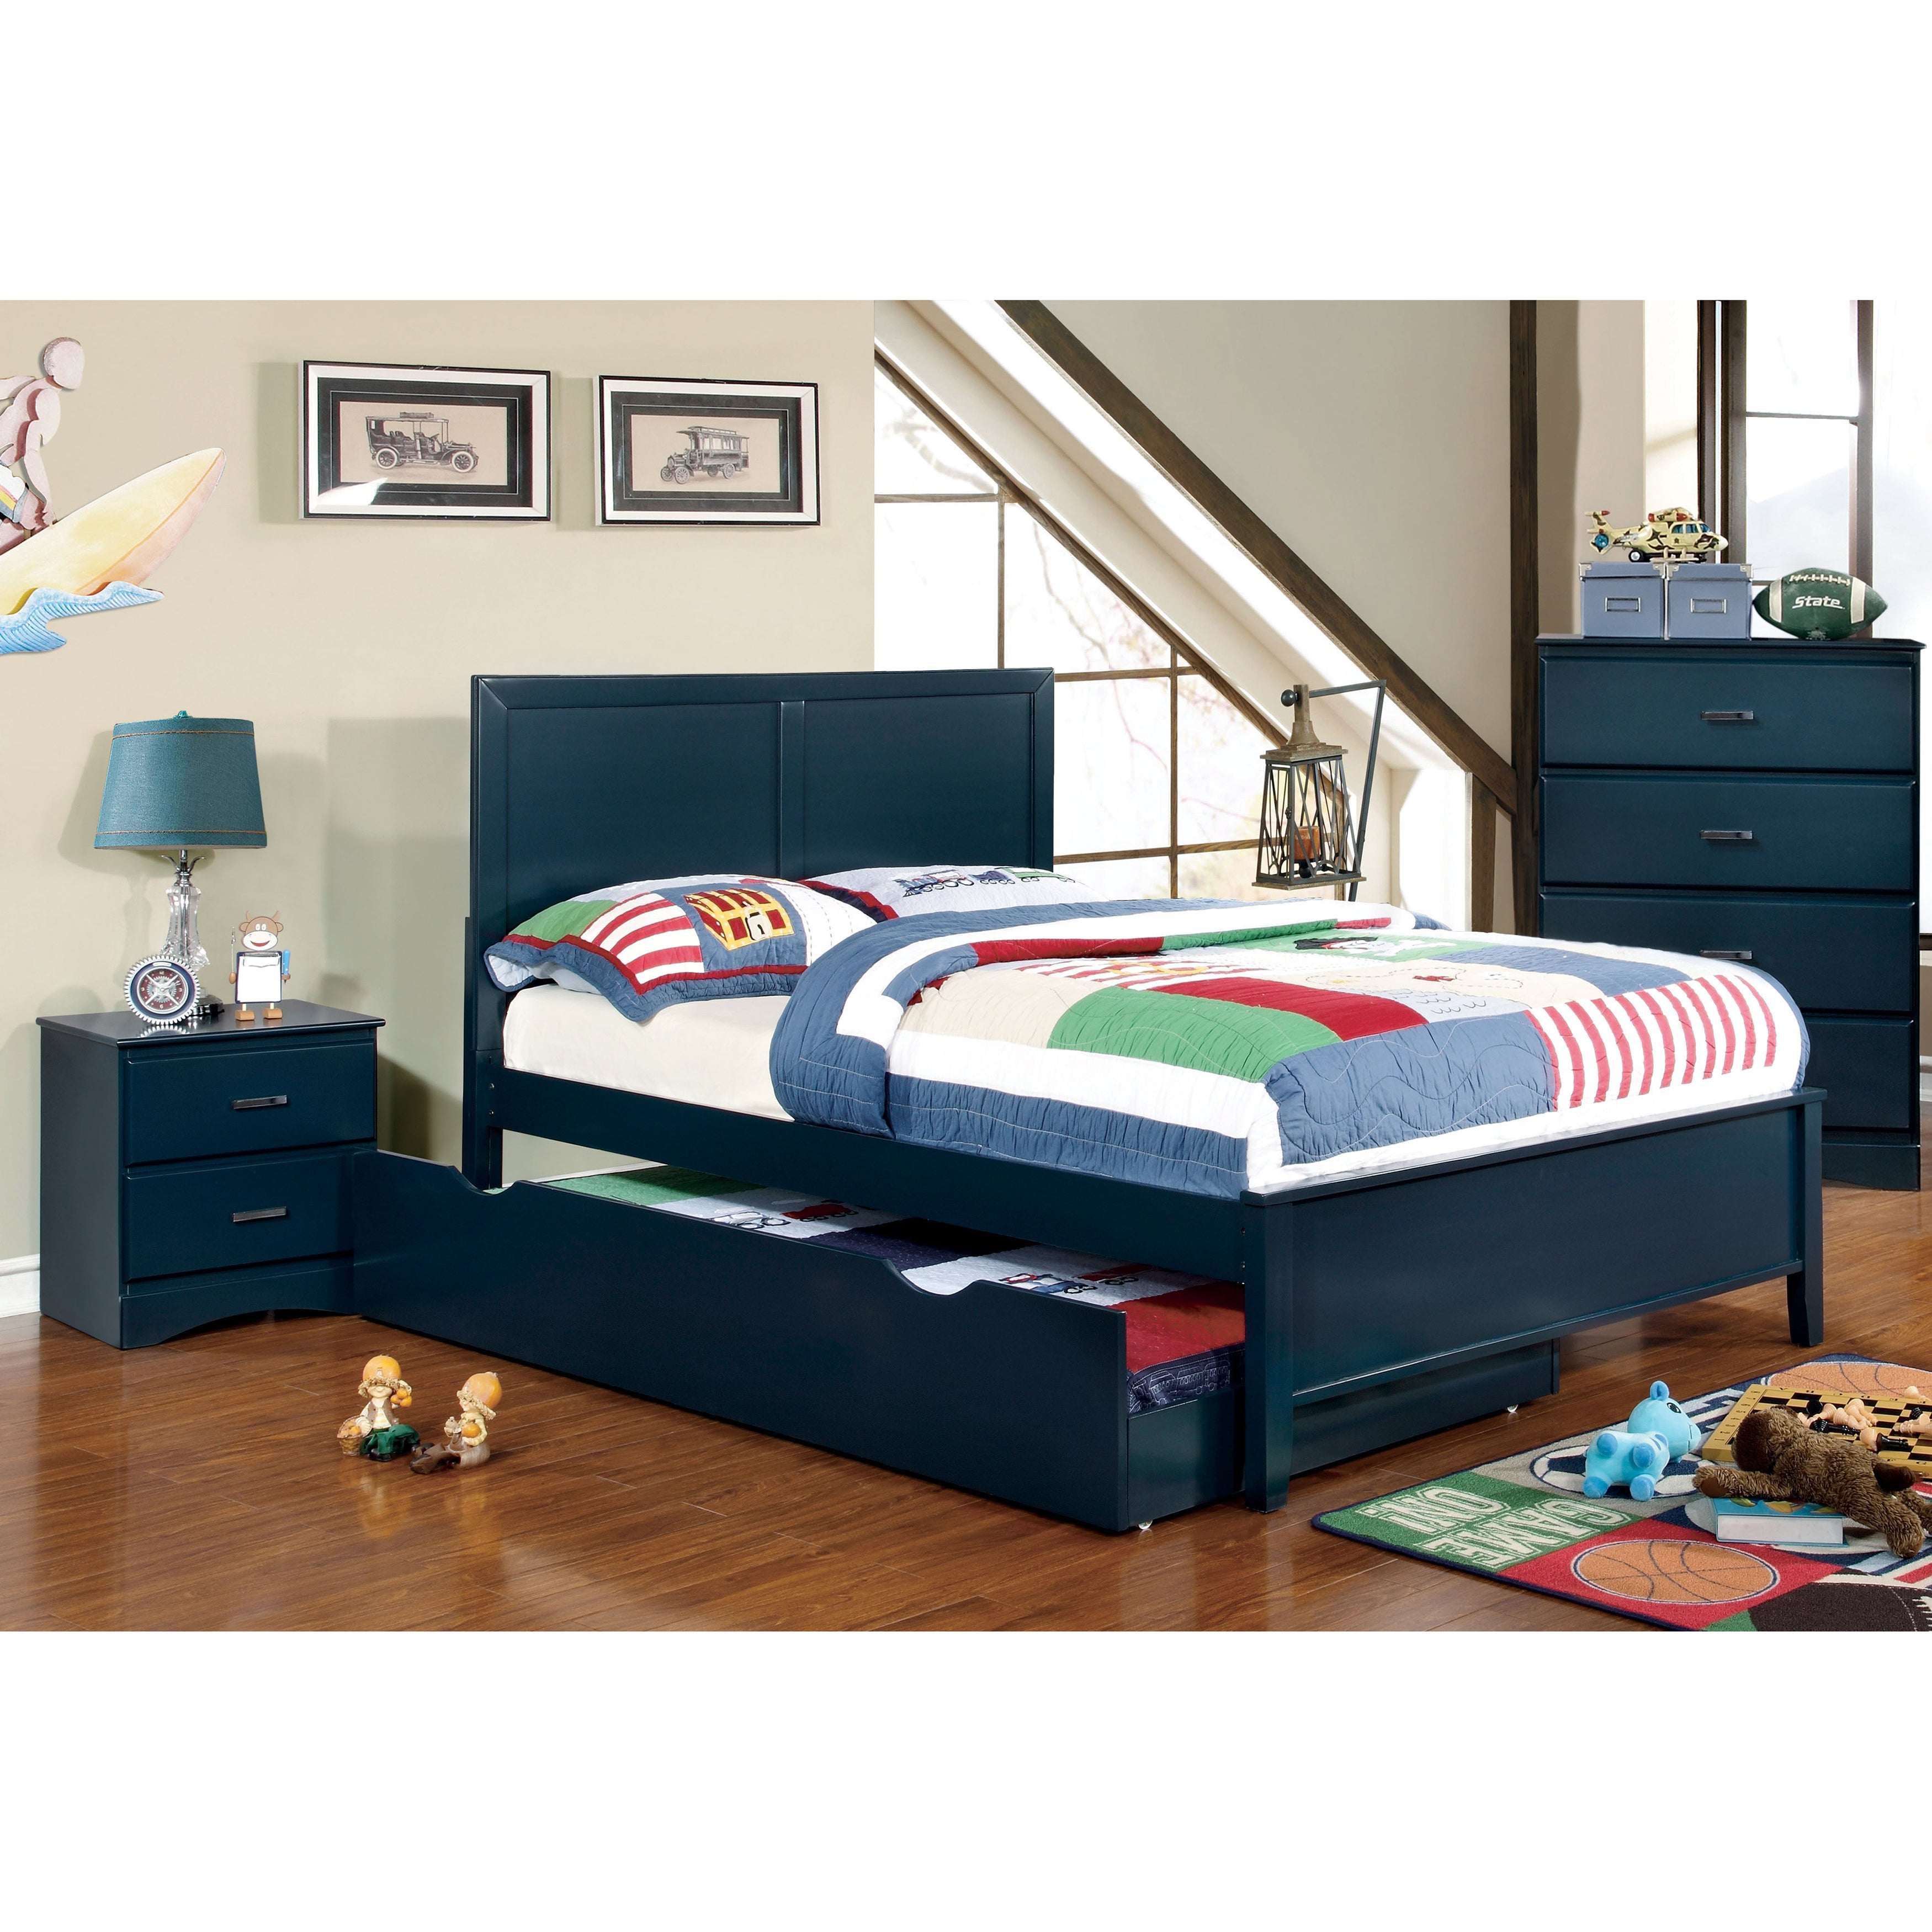 furniture of america colorpop 4 piece full size youth